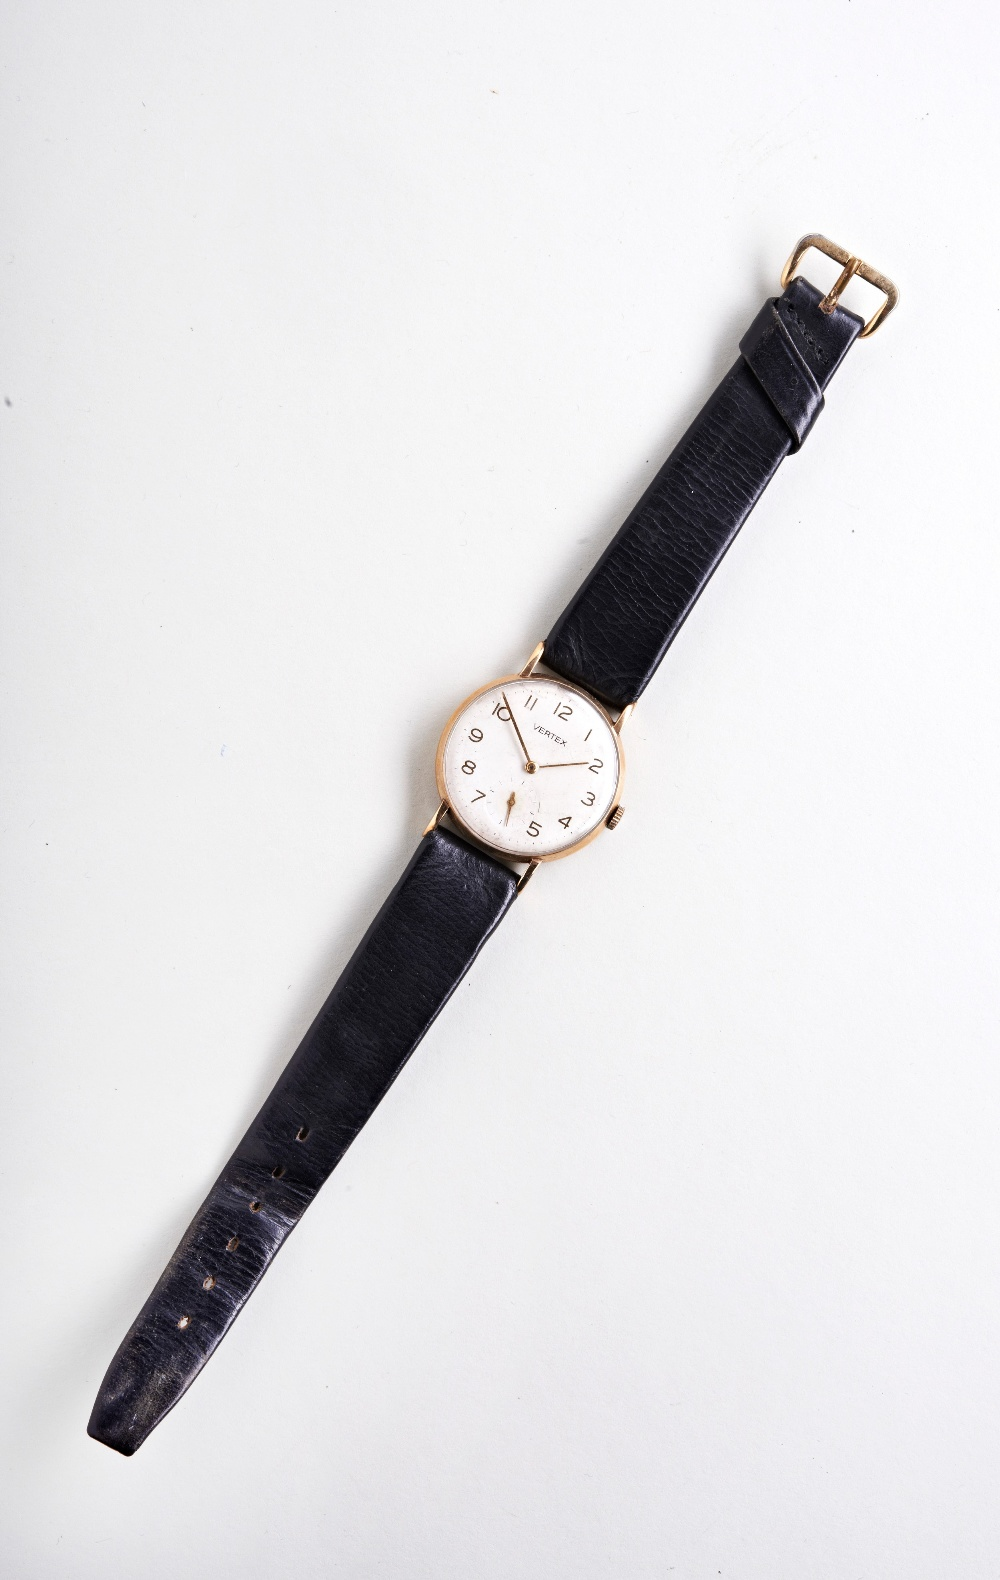 VERTEX 9CT MAN'S DRESS WATCH, c1960, with Arabic numerals and later leather strap. PROVENANCE: The - Image 2 of 3